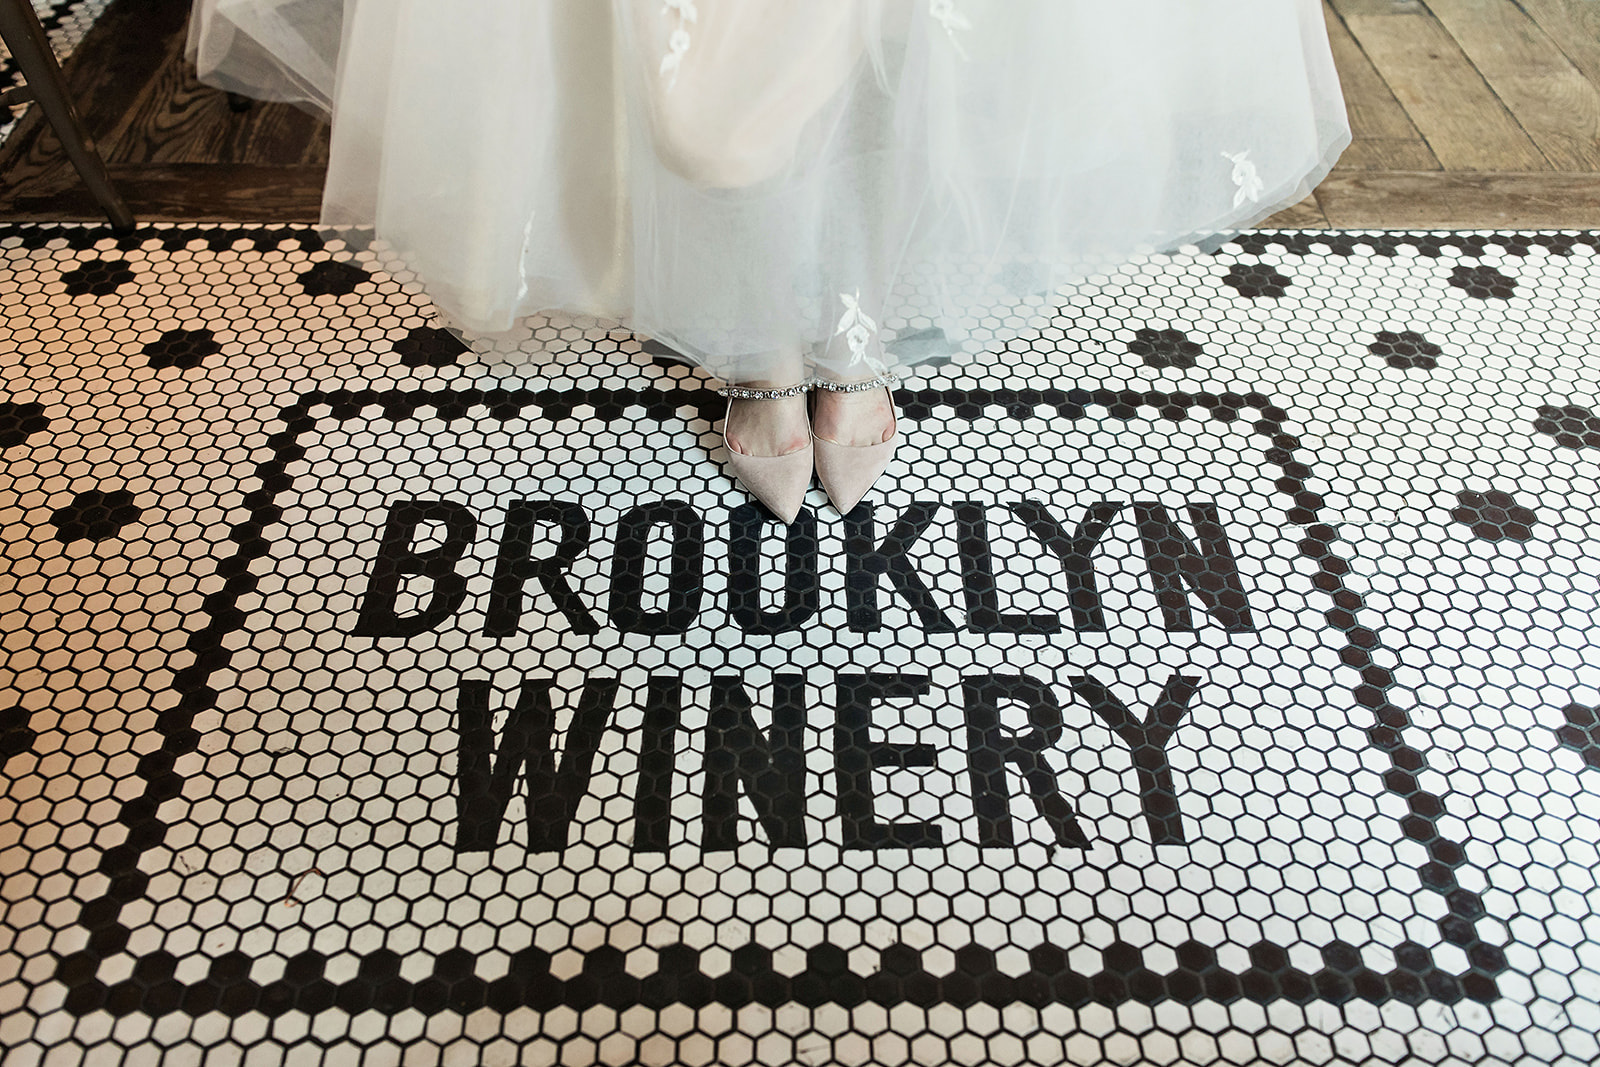 Brooklyn Winery Entrance Tile